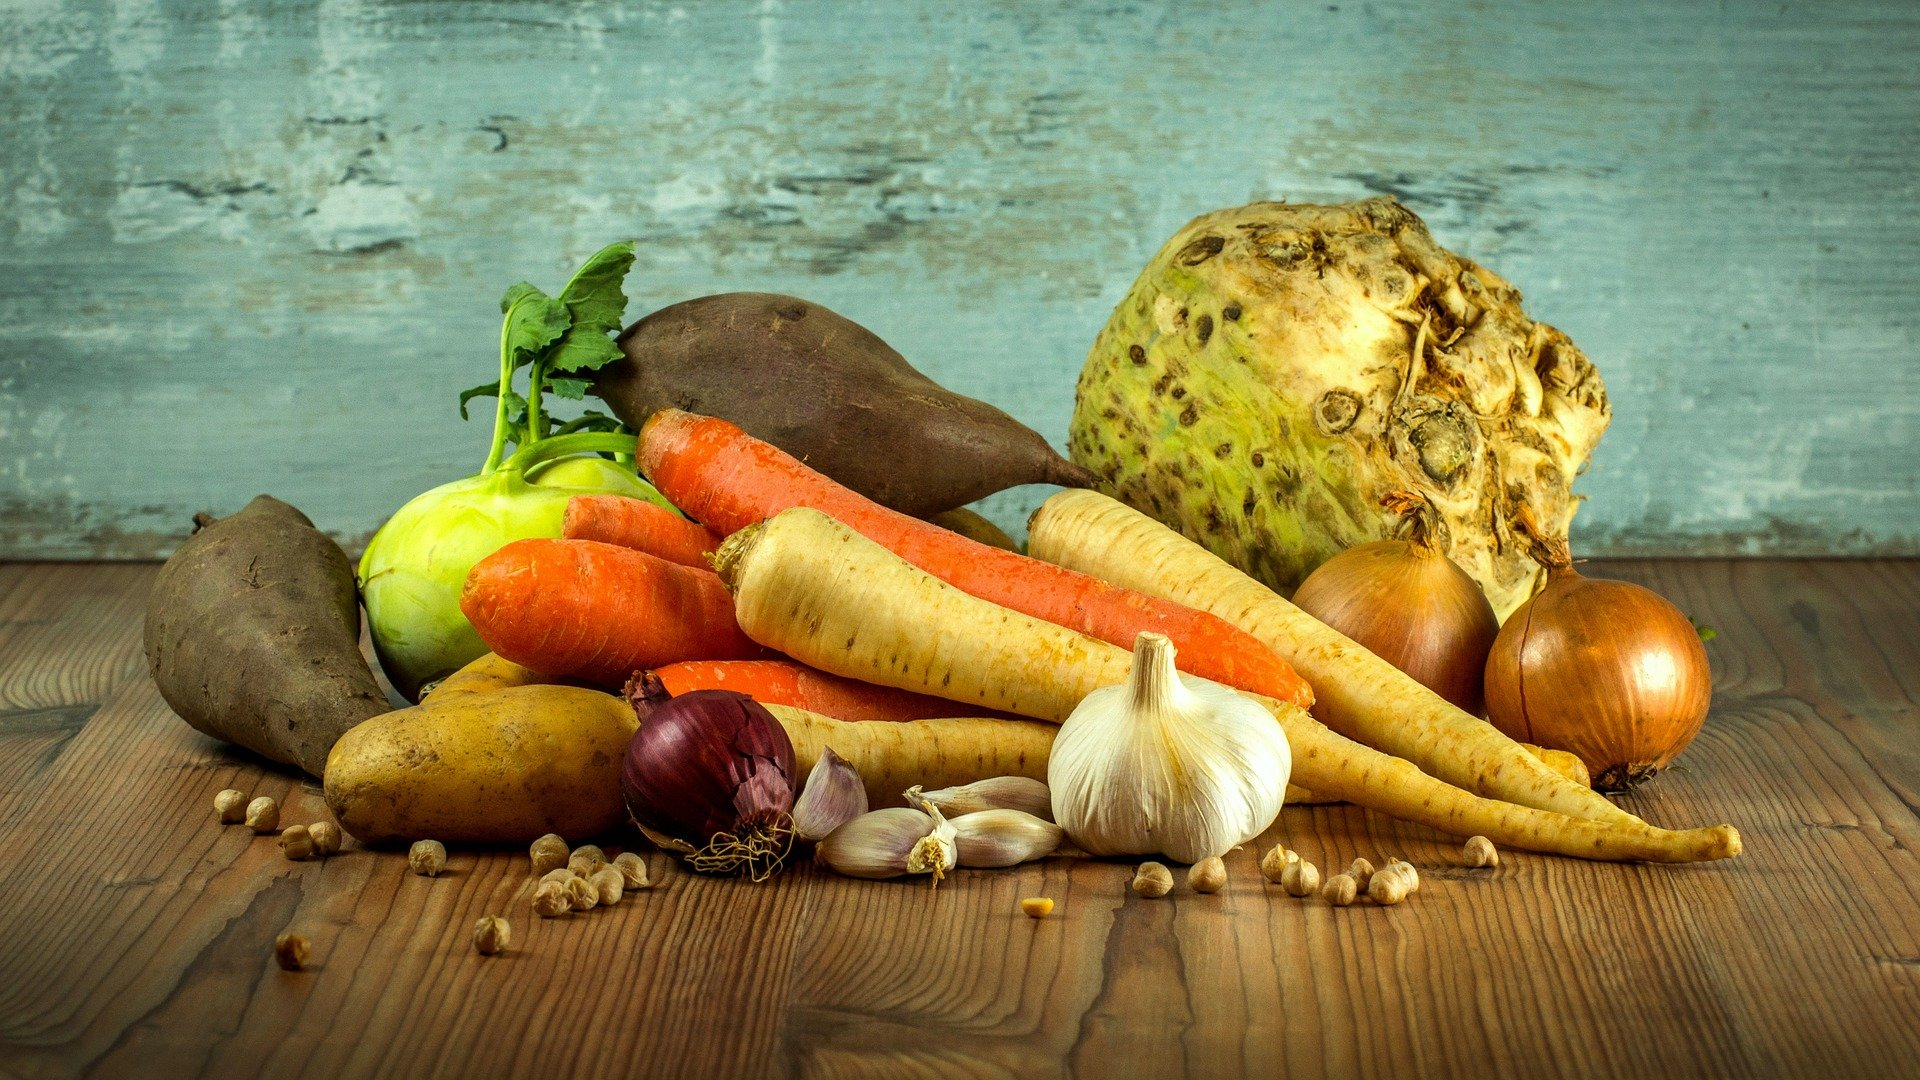 A pile of vegetables. Orange and yellow carrots, beets, onions, garlic, potatoes and nuts